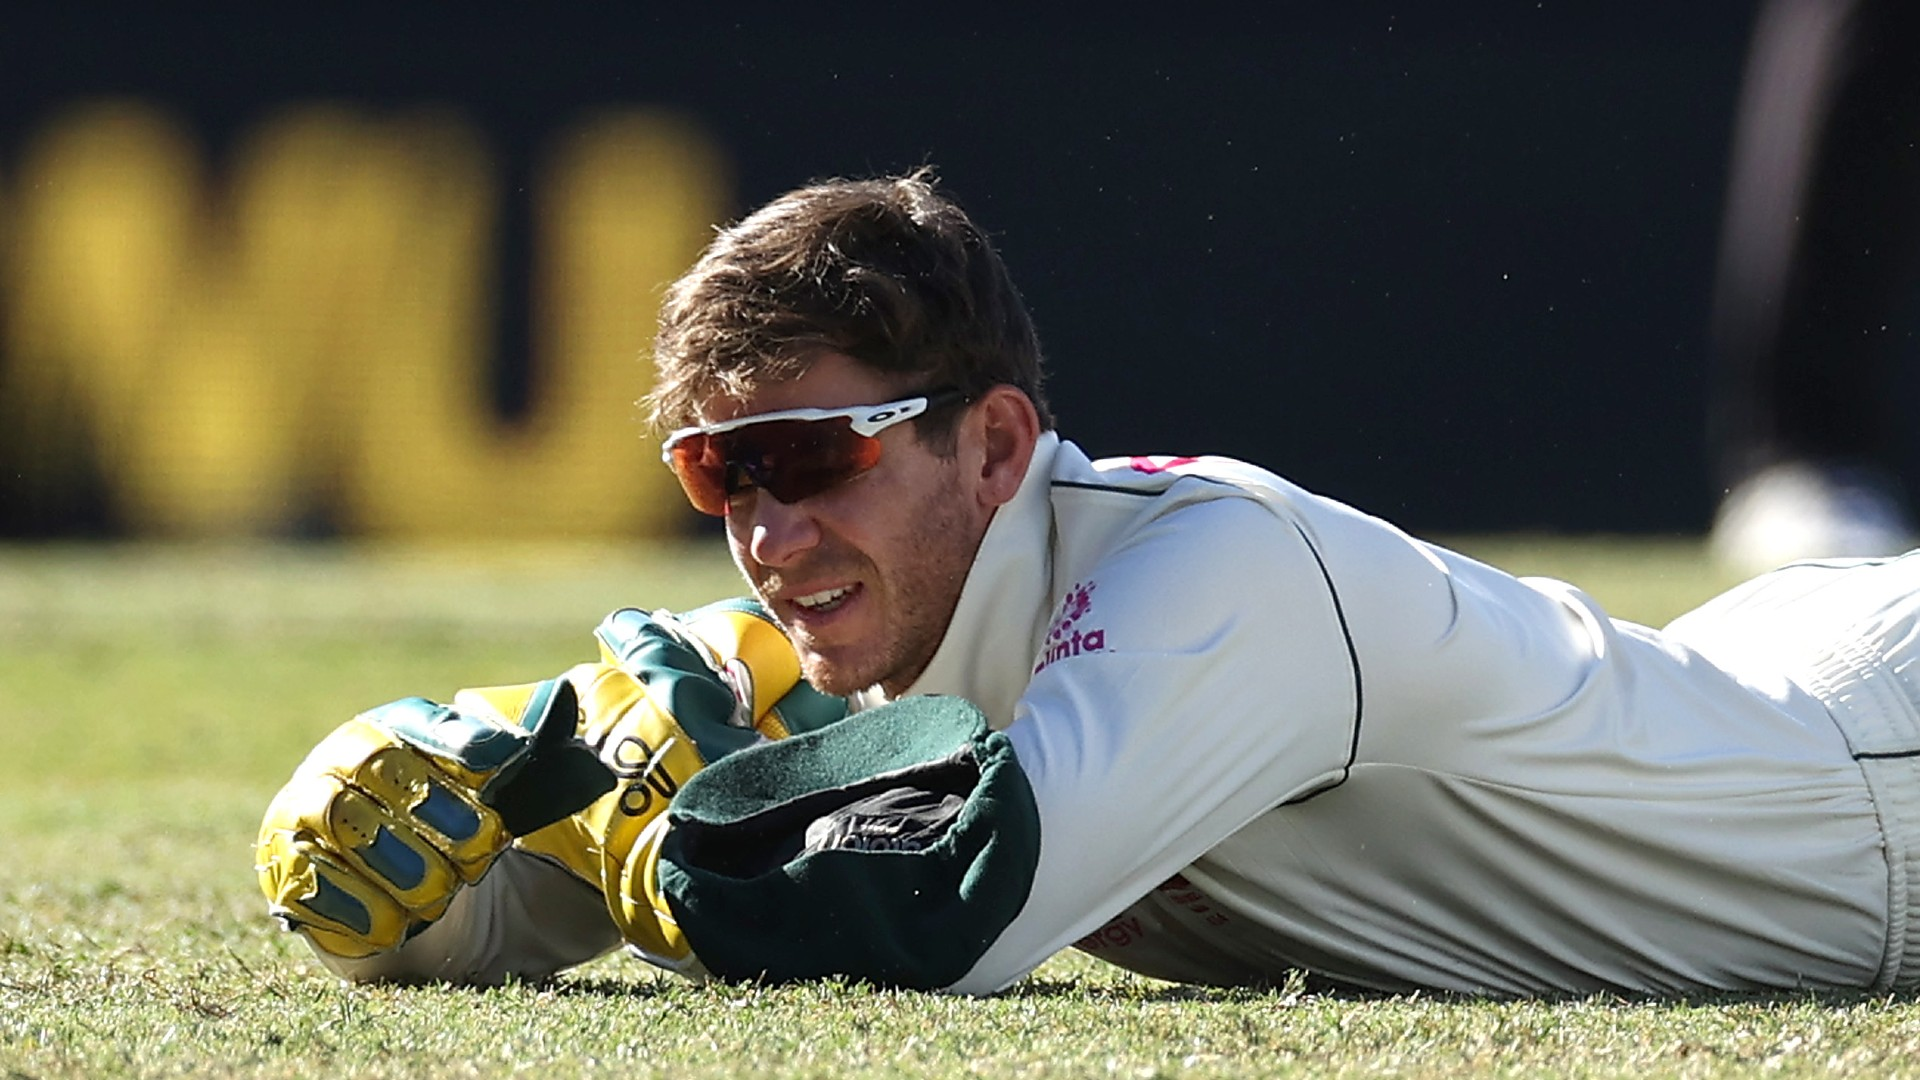 Australia captain Paine: I had a really poor game as leader